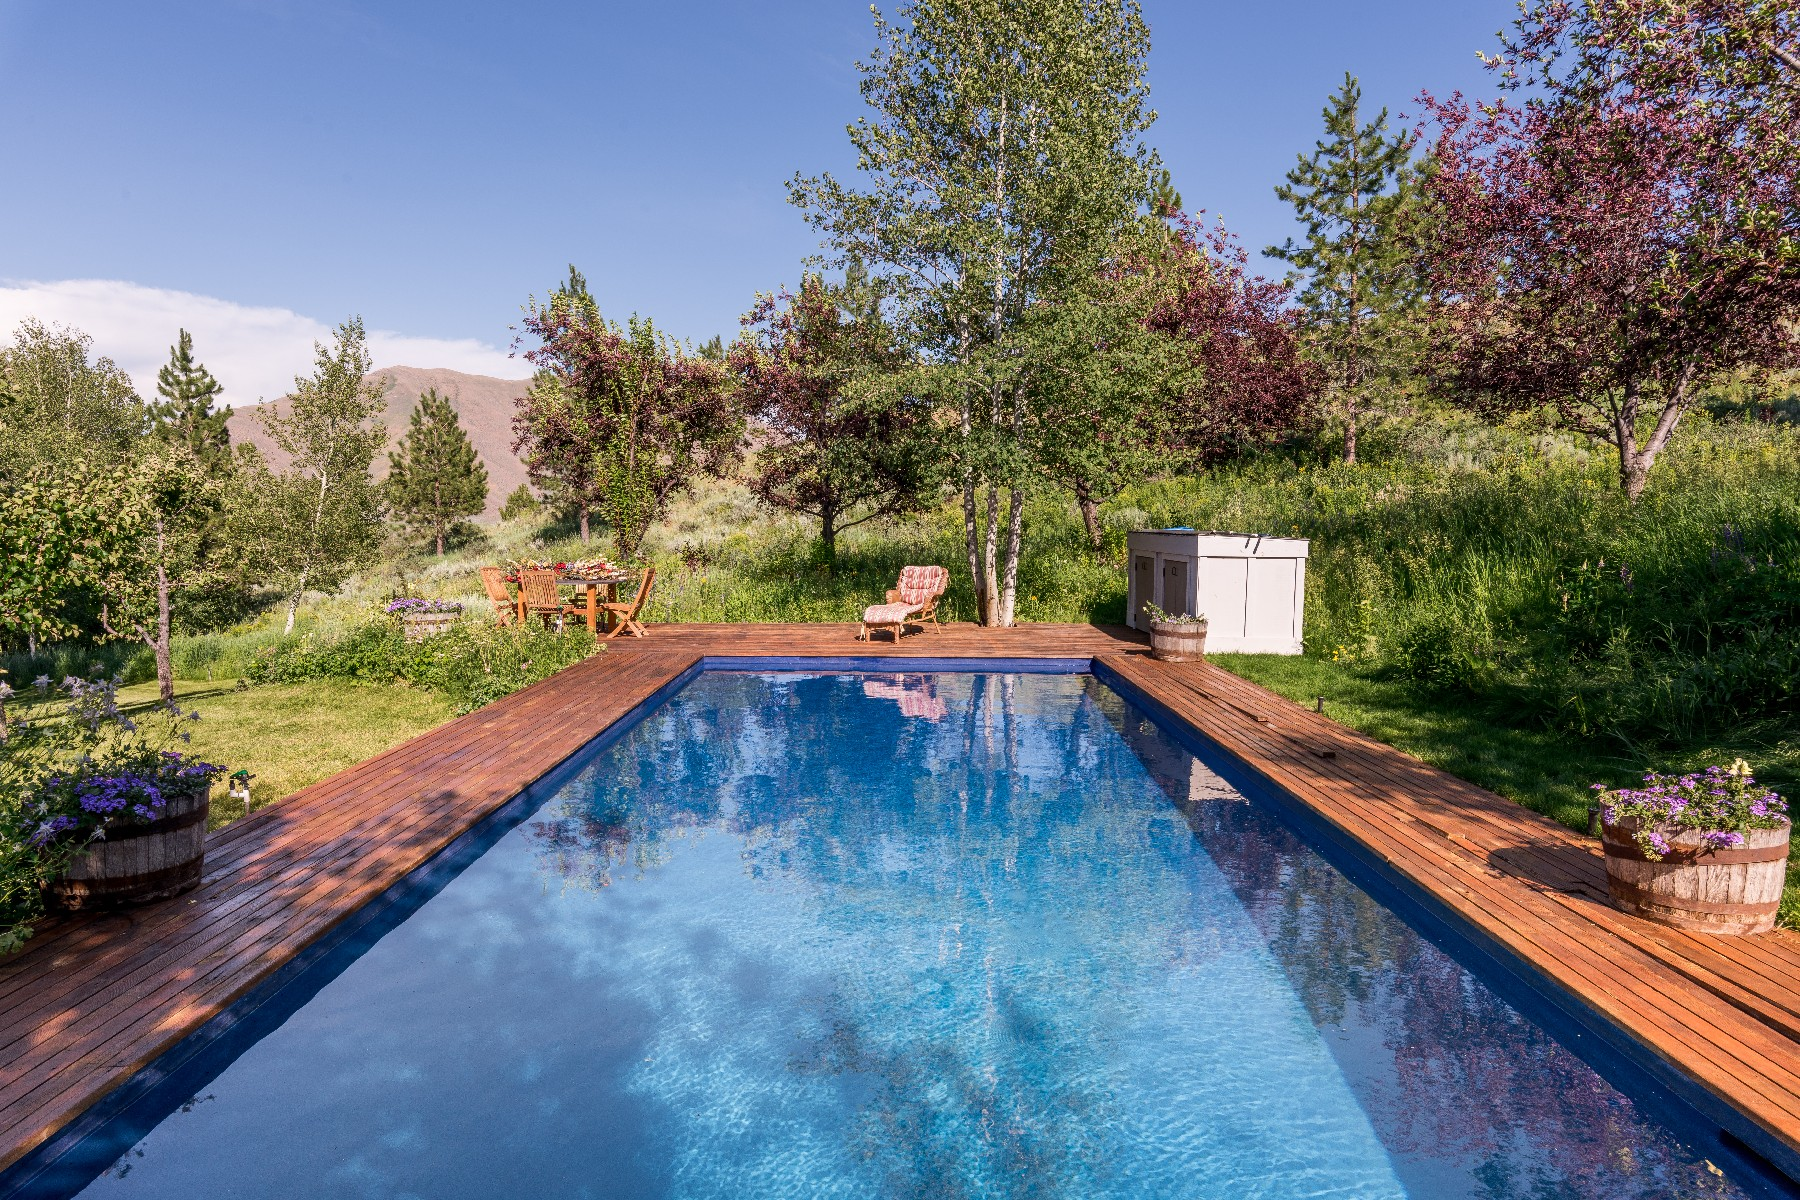 Additional photo for property listing at Privacy, Serenity and Adventure 155 Townsend Gulch Rd Bellevue, Idaho 83313 United States